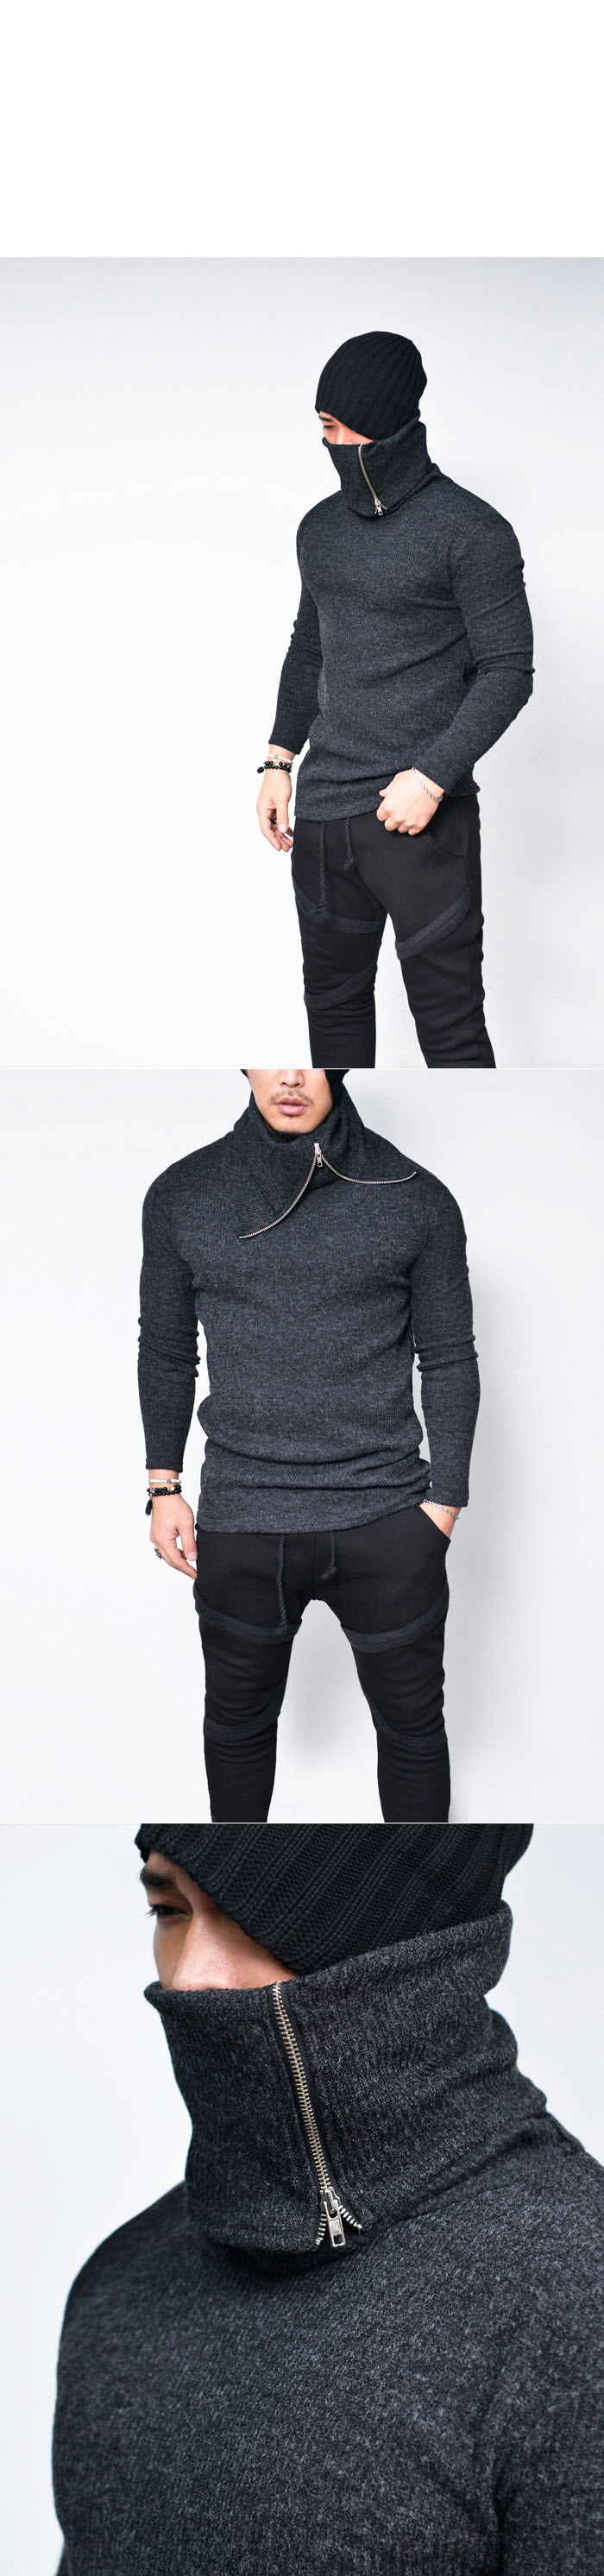 Tops :: Zippered Highneck Turtle Knit-Tee 635 - Mens Fashion Clothing For An Attractive Guy Look